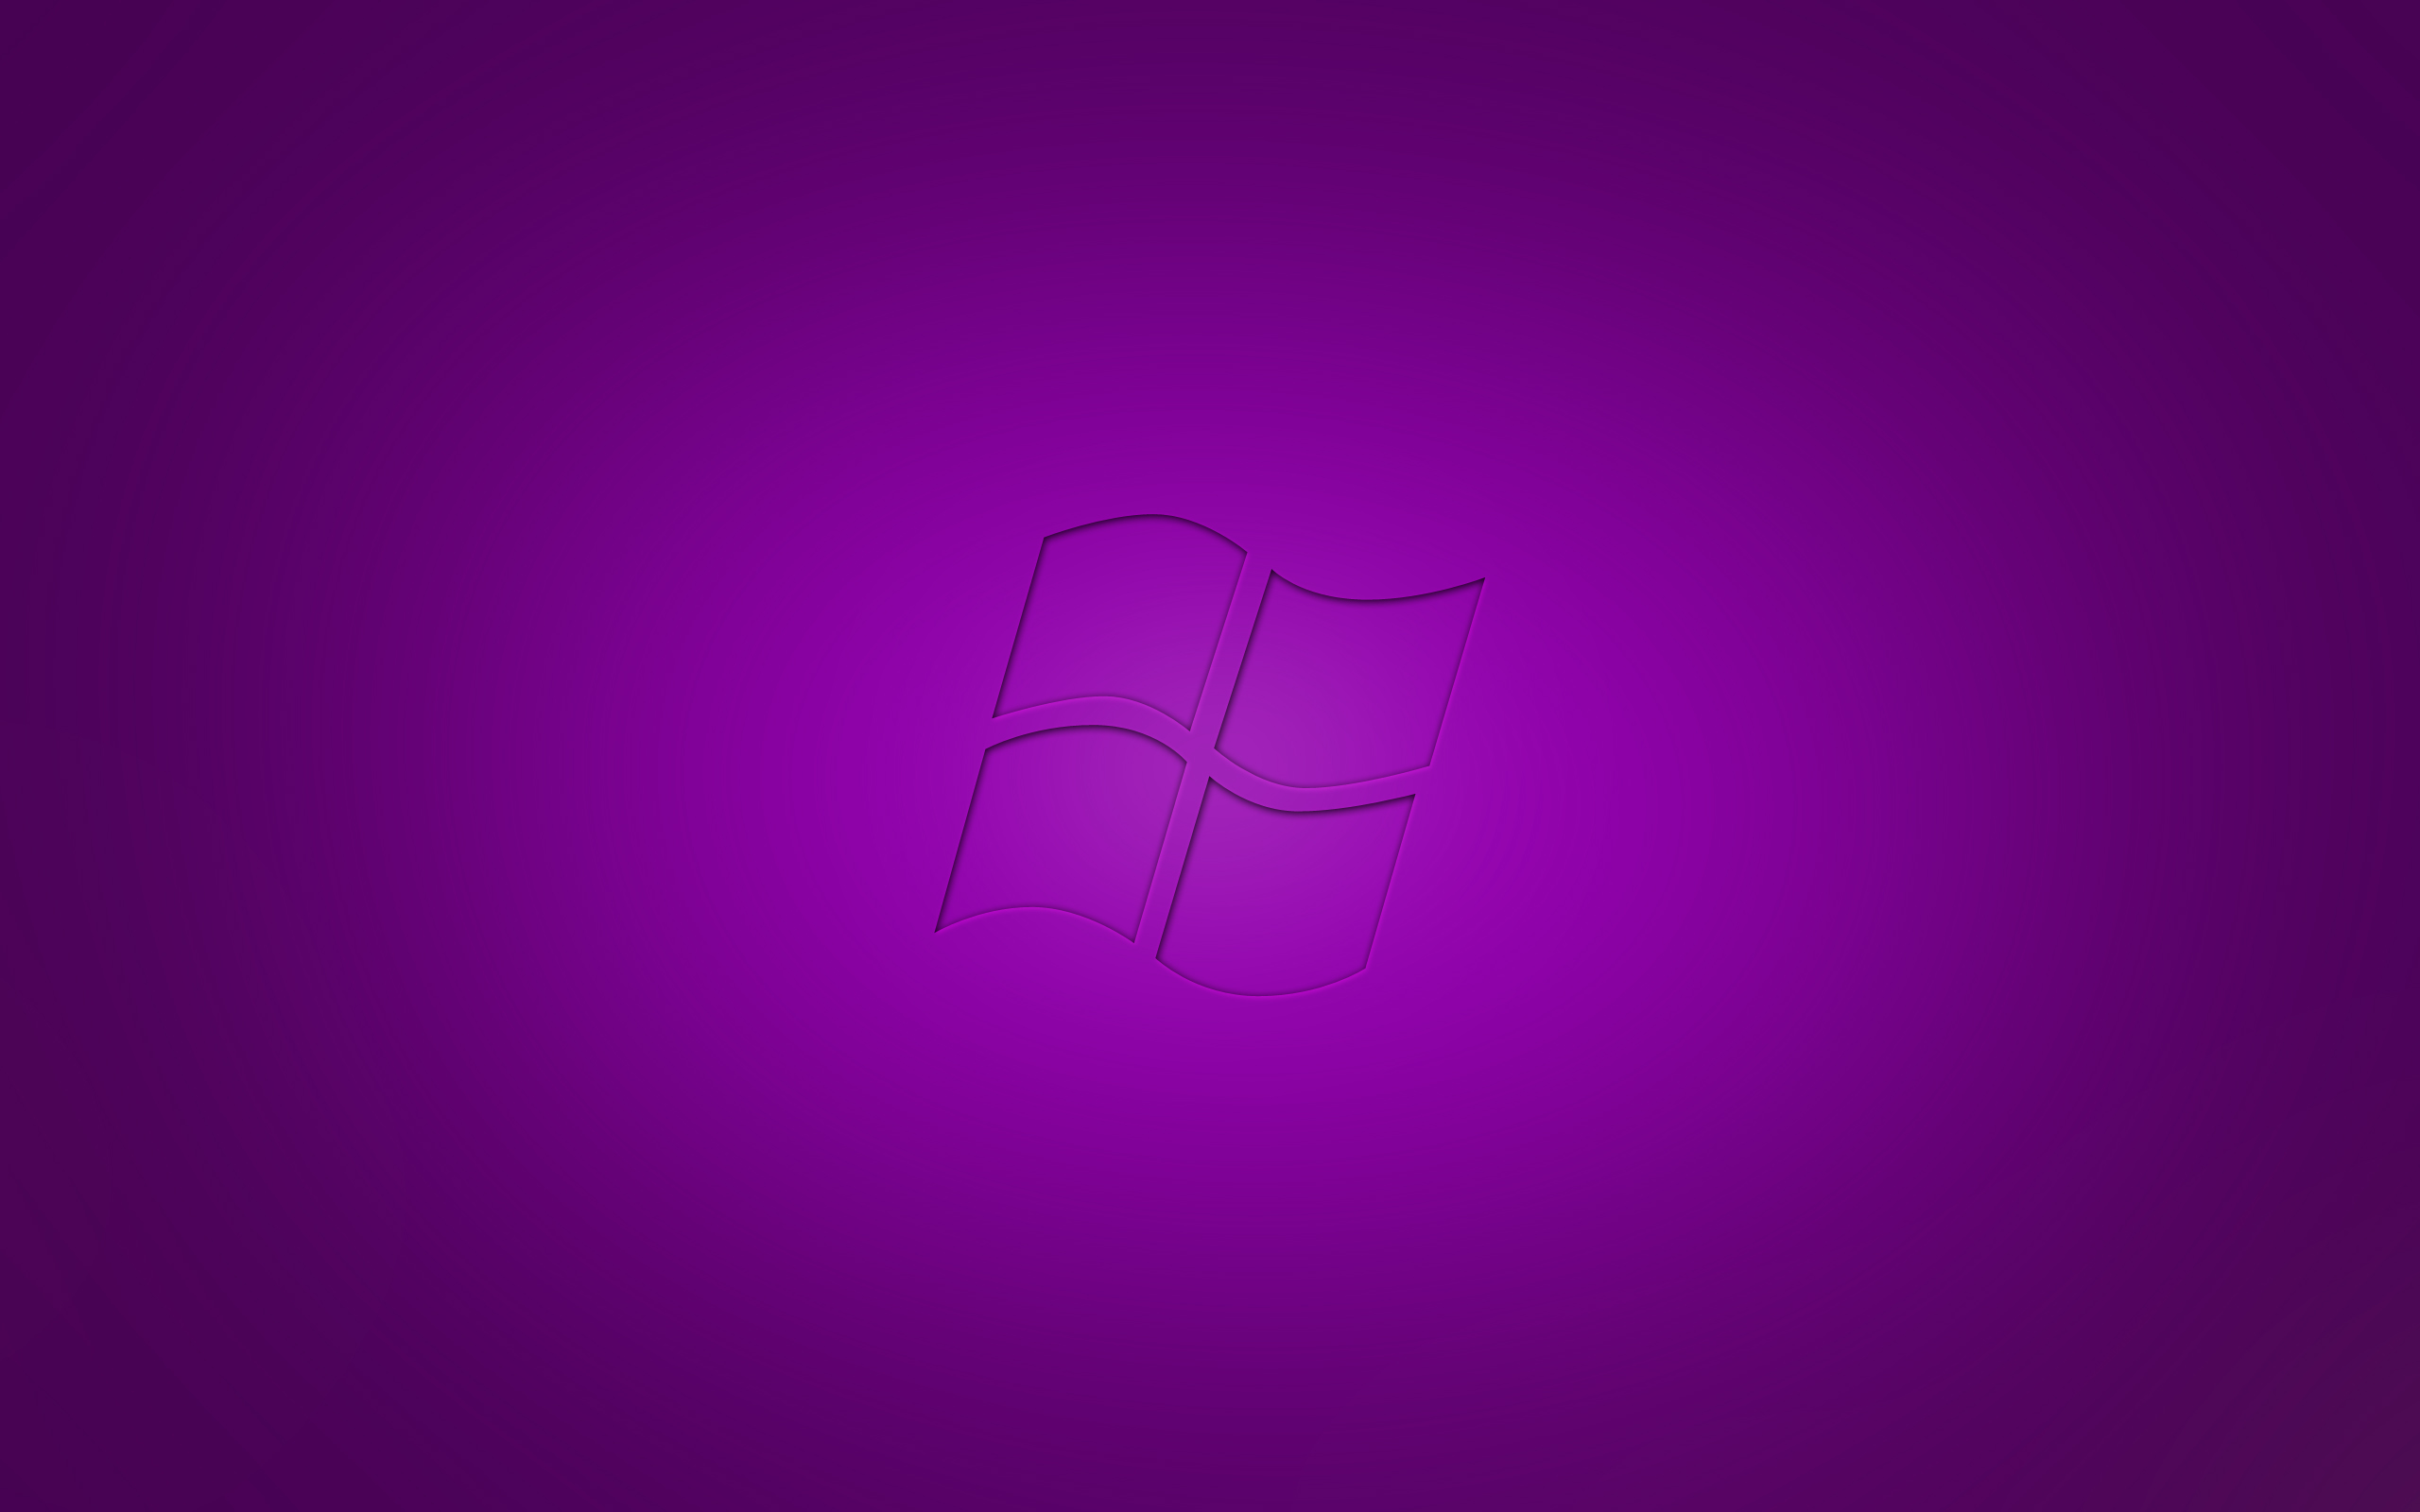 windows press purple « awesome wallpapers